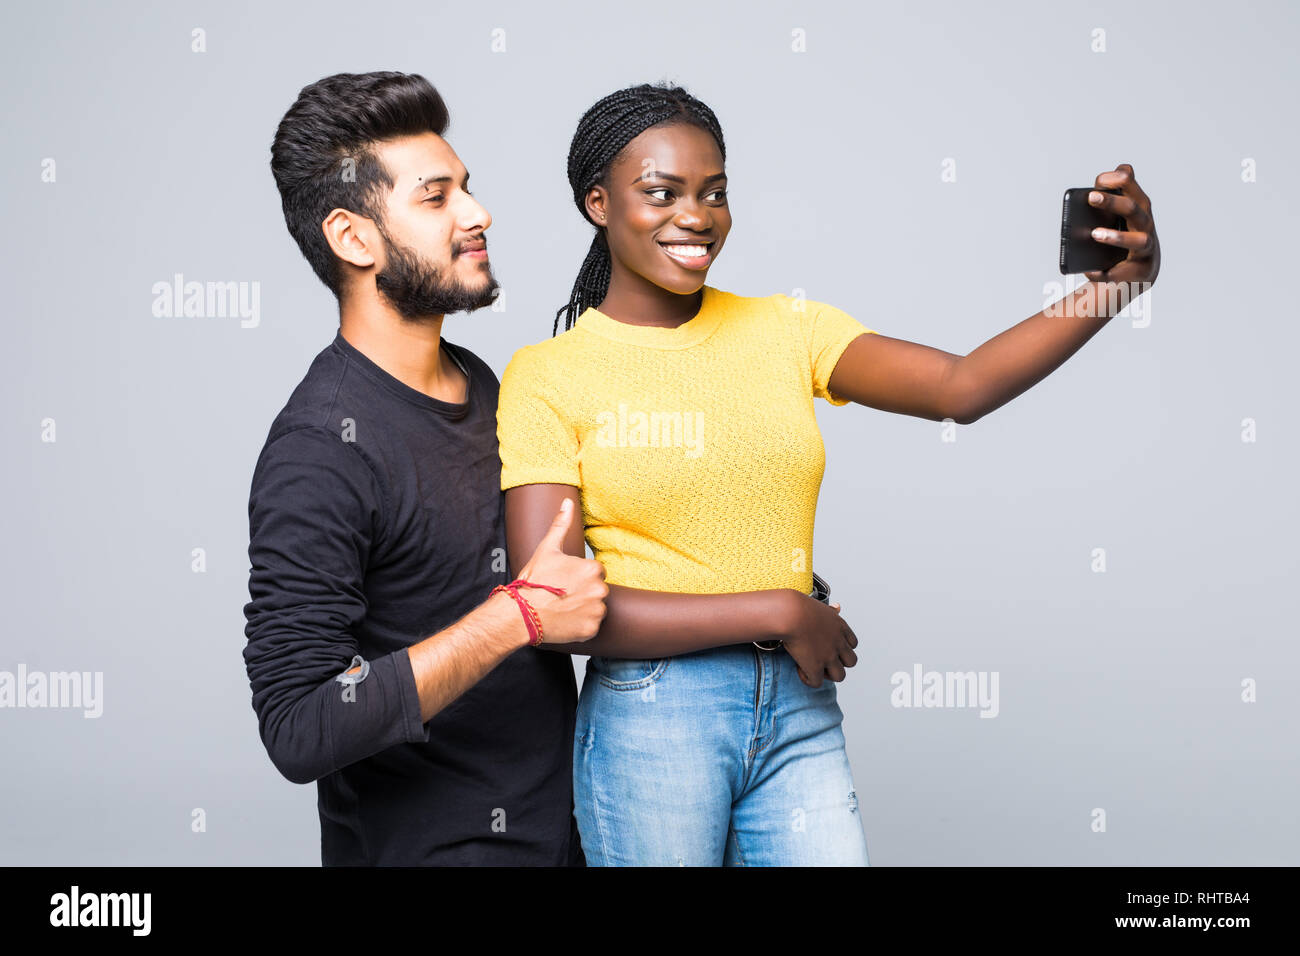 Young interracial couple, indian man and african woman taking selfie on mobile phone isolated on white background - Stock Image